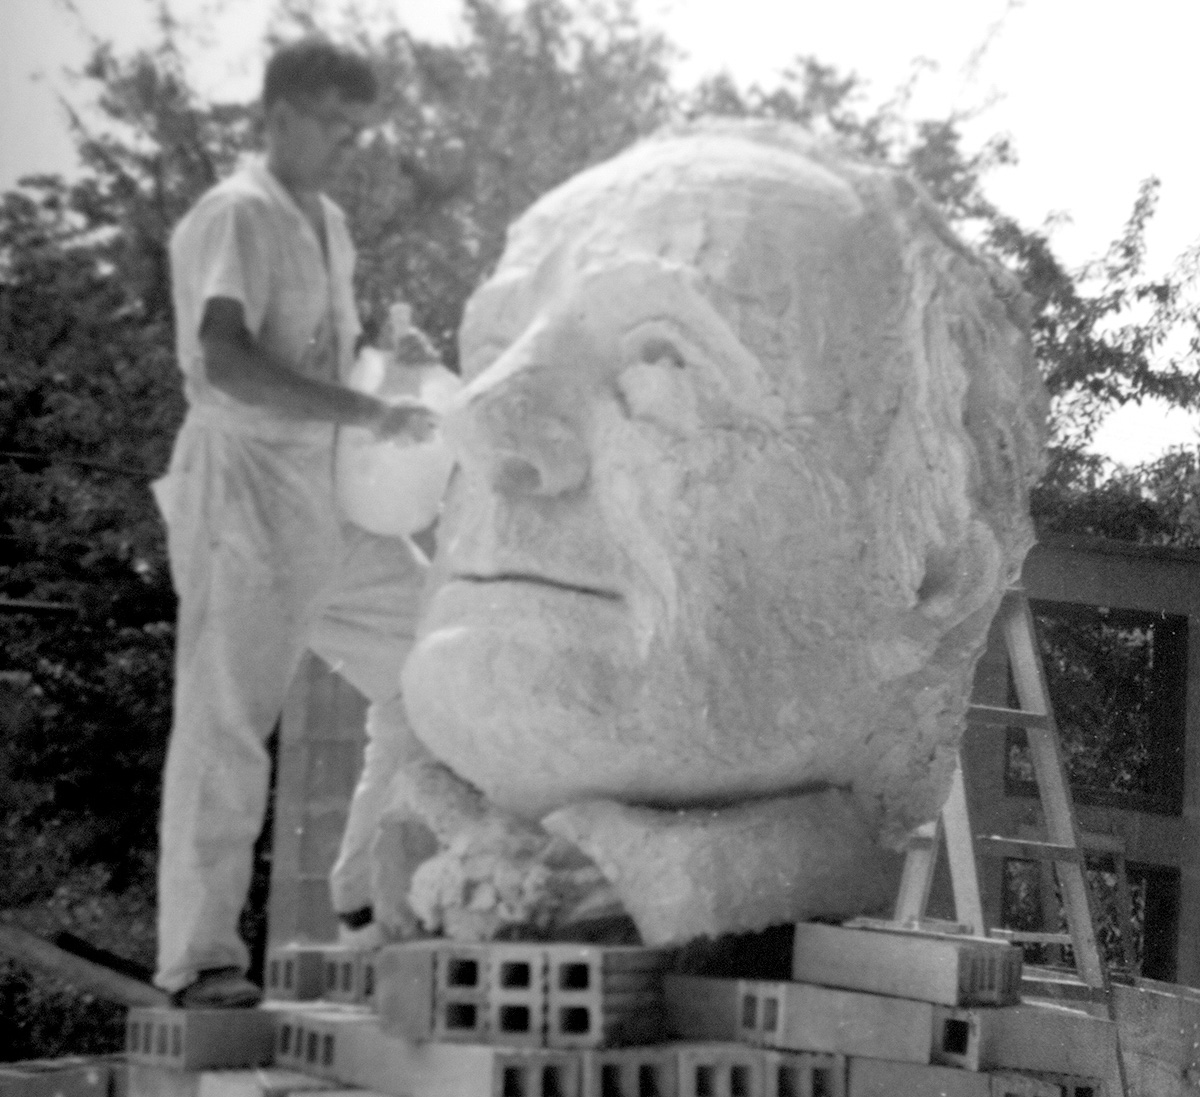 David Cargill works on the statue of Mirabeau B. Lamar, far left, which sits in the Quad at Lamar University.